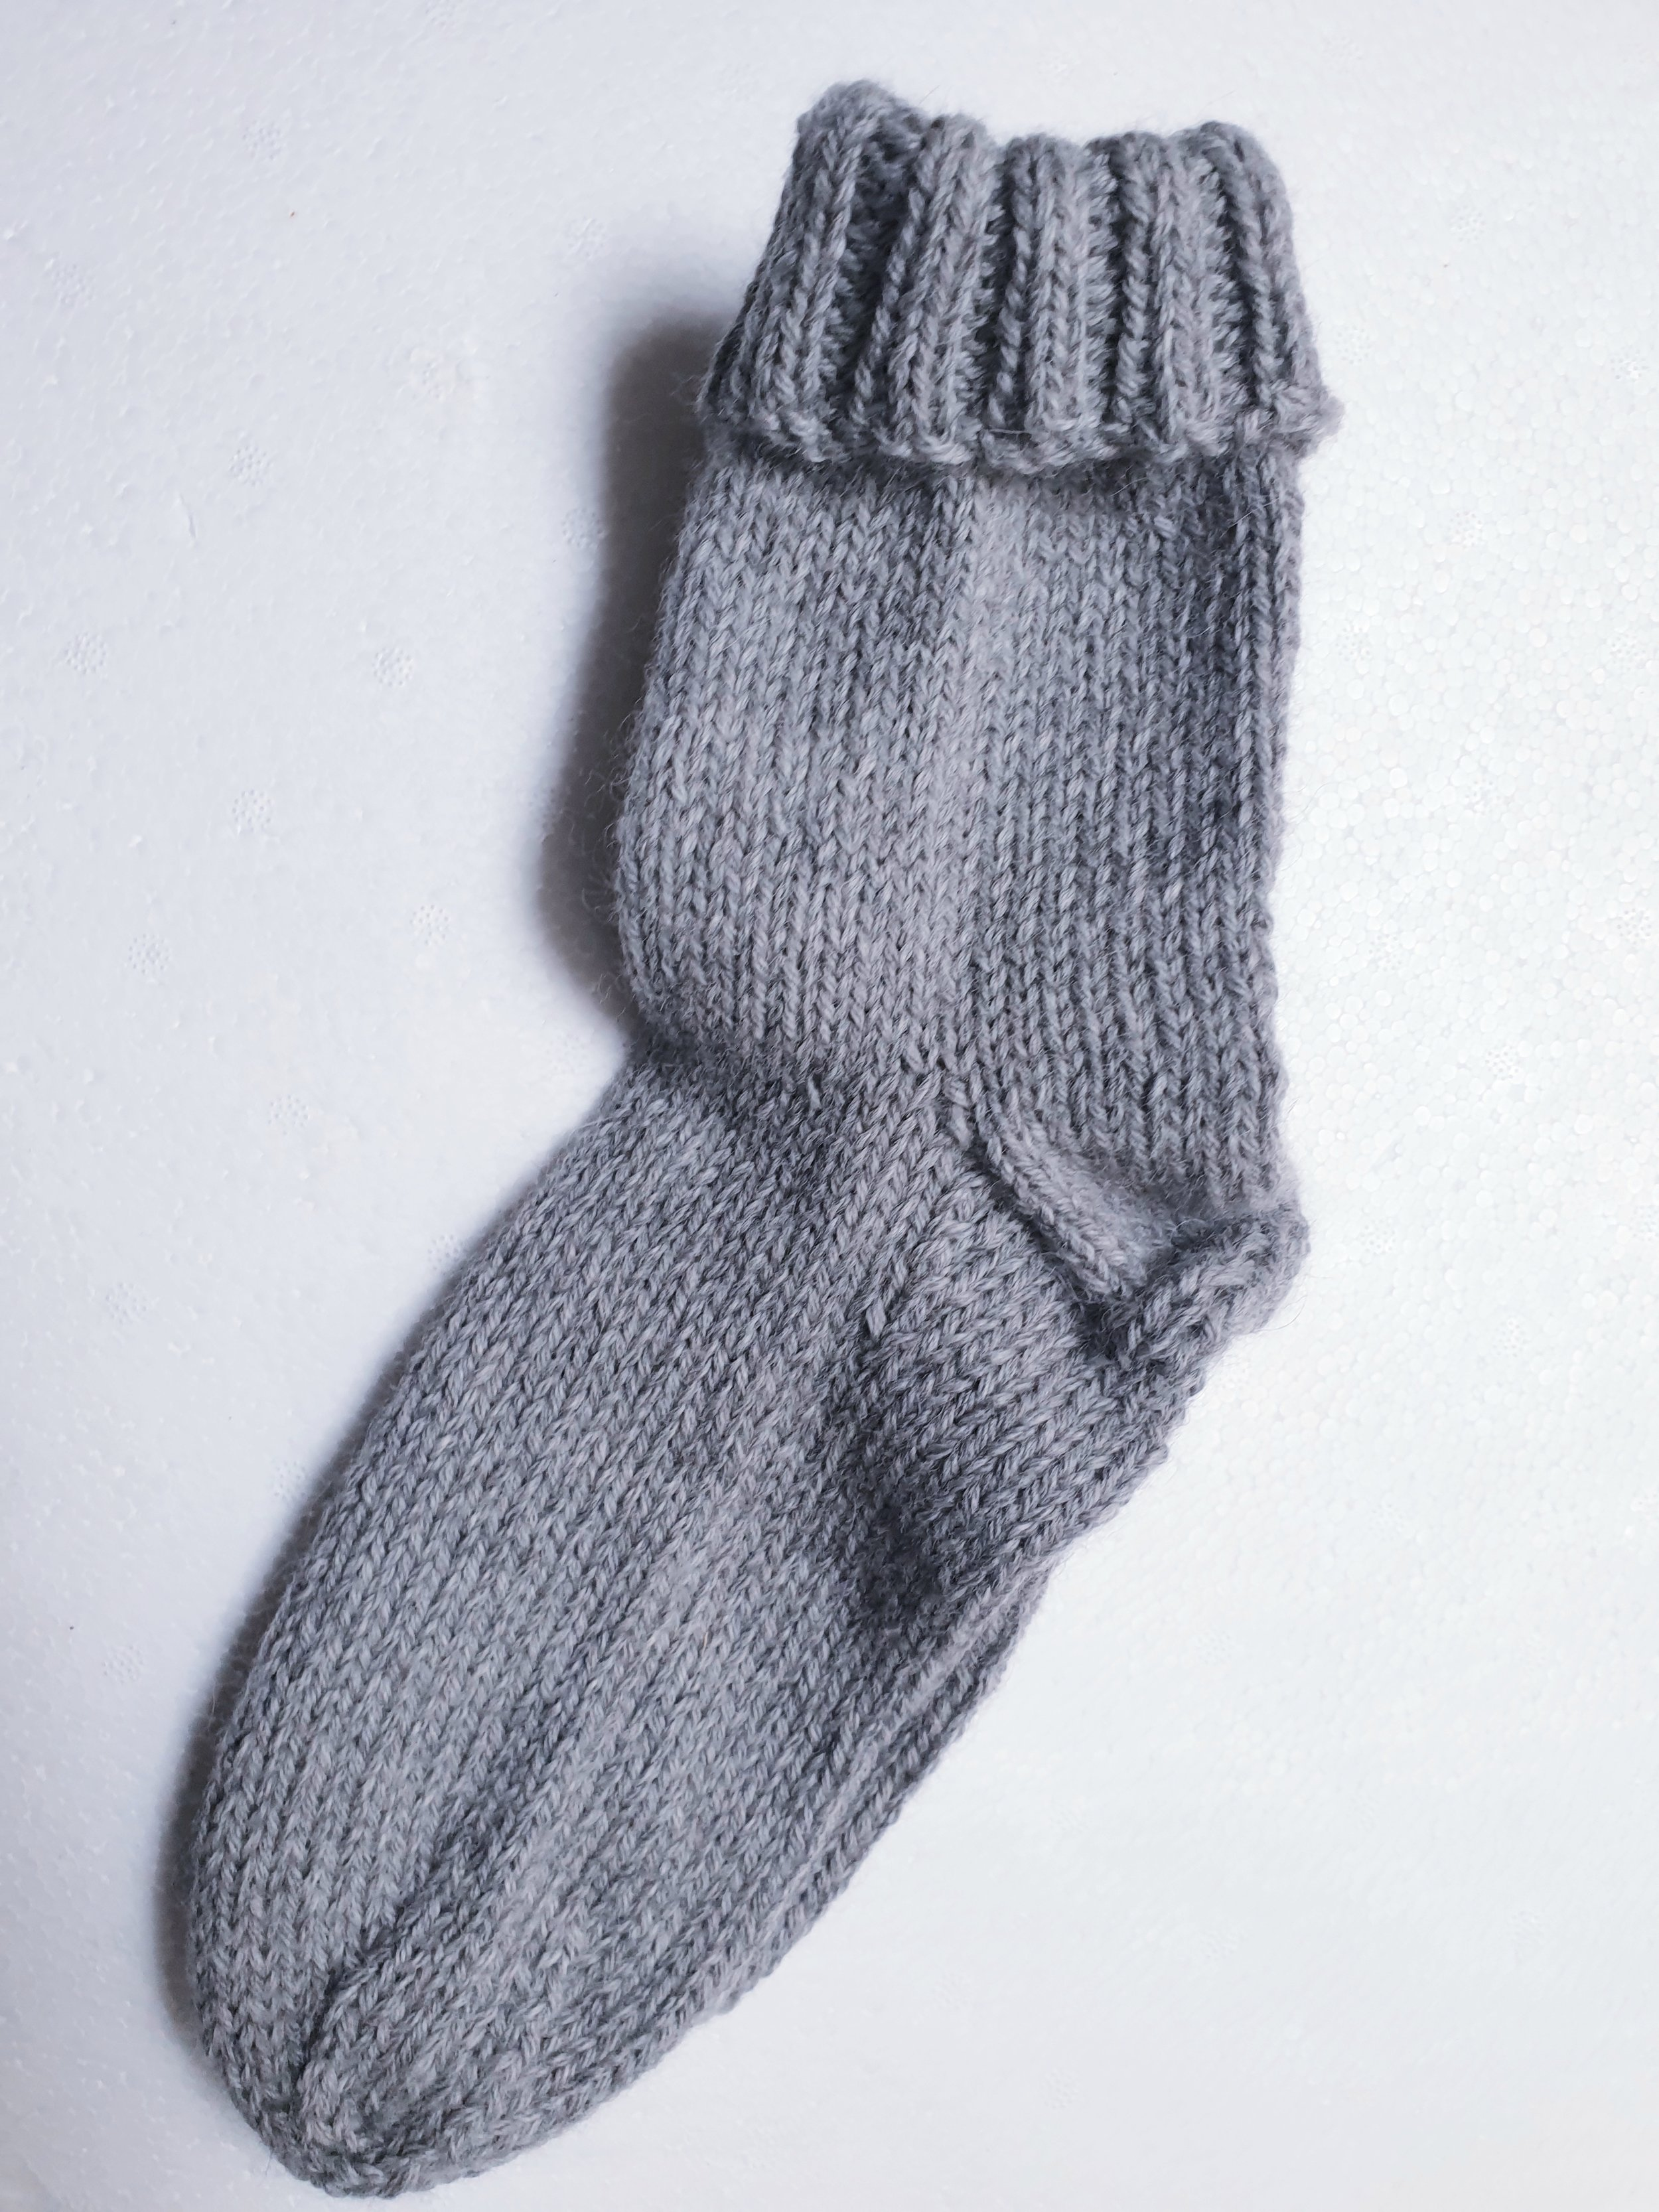 The Bed Socks